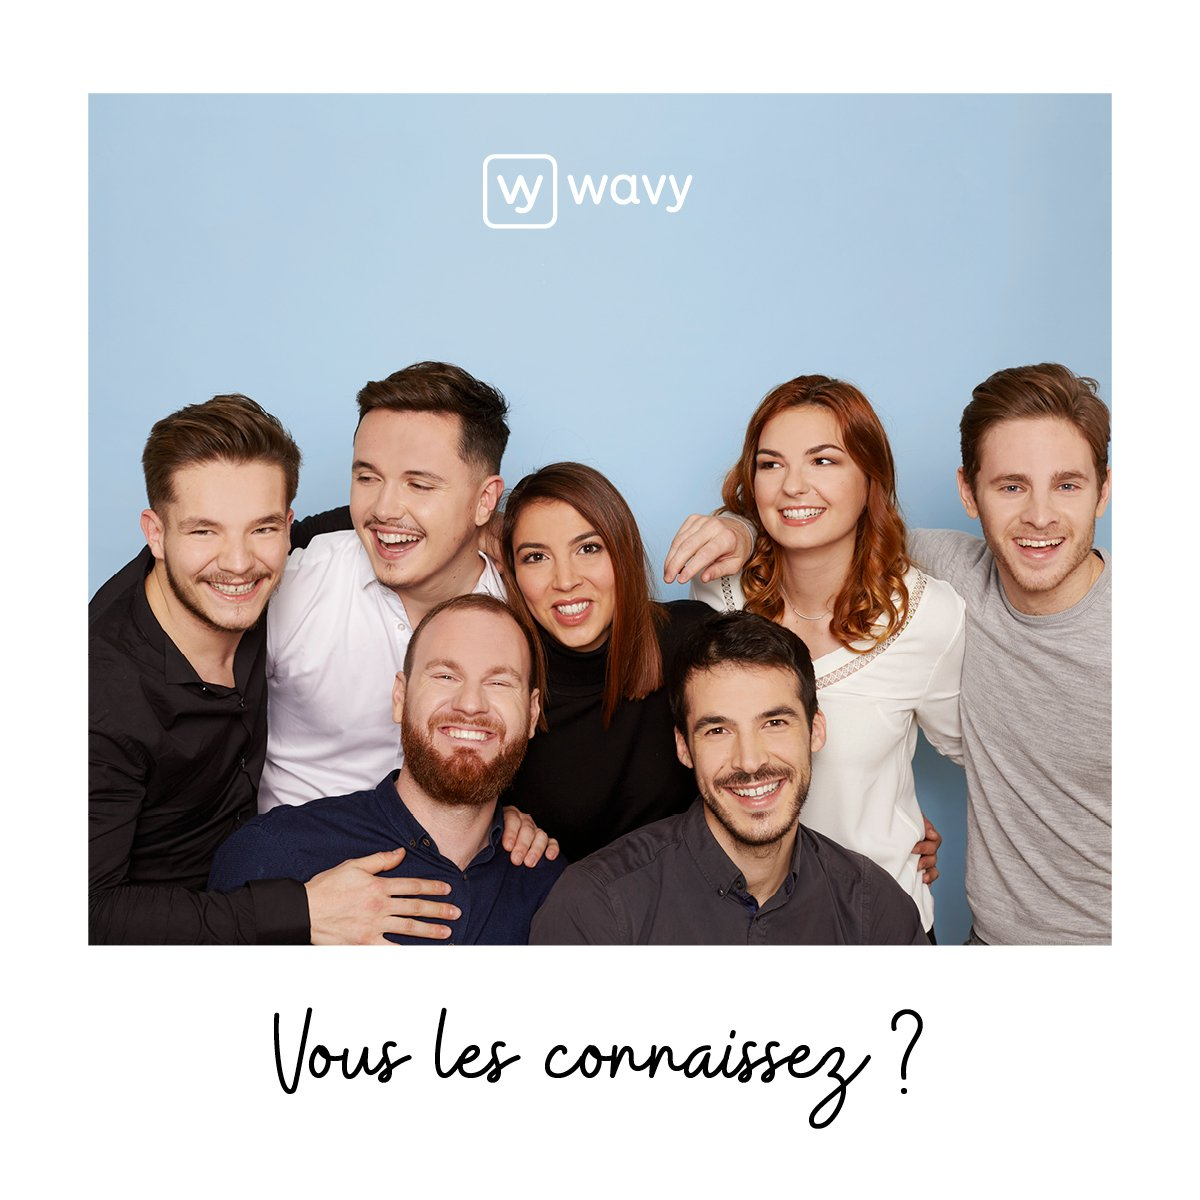 Vous voulez vivre un moment d'exception ? 🤩 Raphaël, Vincent, Guillaume, Eva, Clément, Maëlle et Benjamin se déplacent de Lyon à Marseille, dans votre salon ! #startup #bestteam #wavyfamily #digital https://t.co/saqGDWWARq